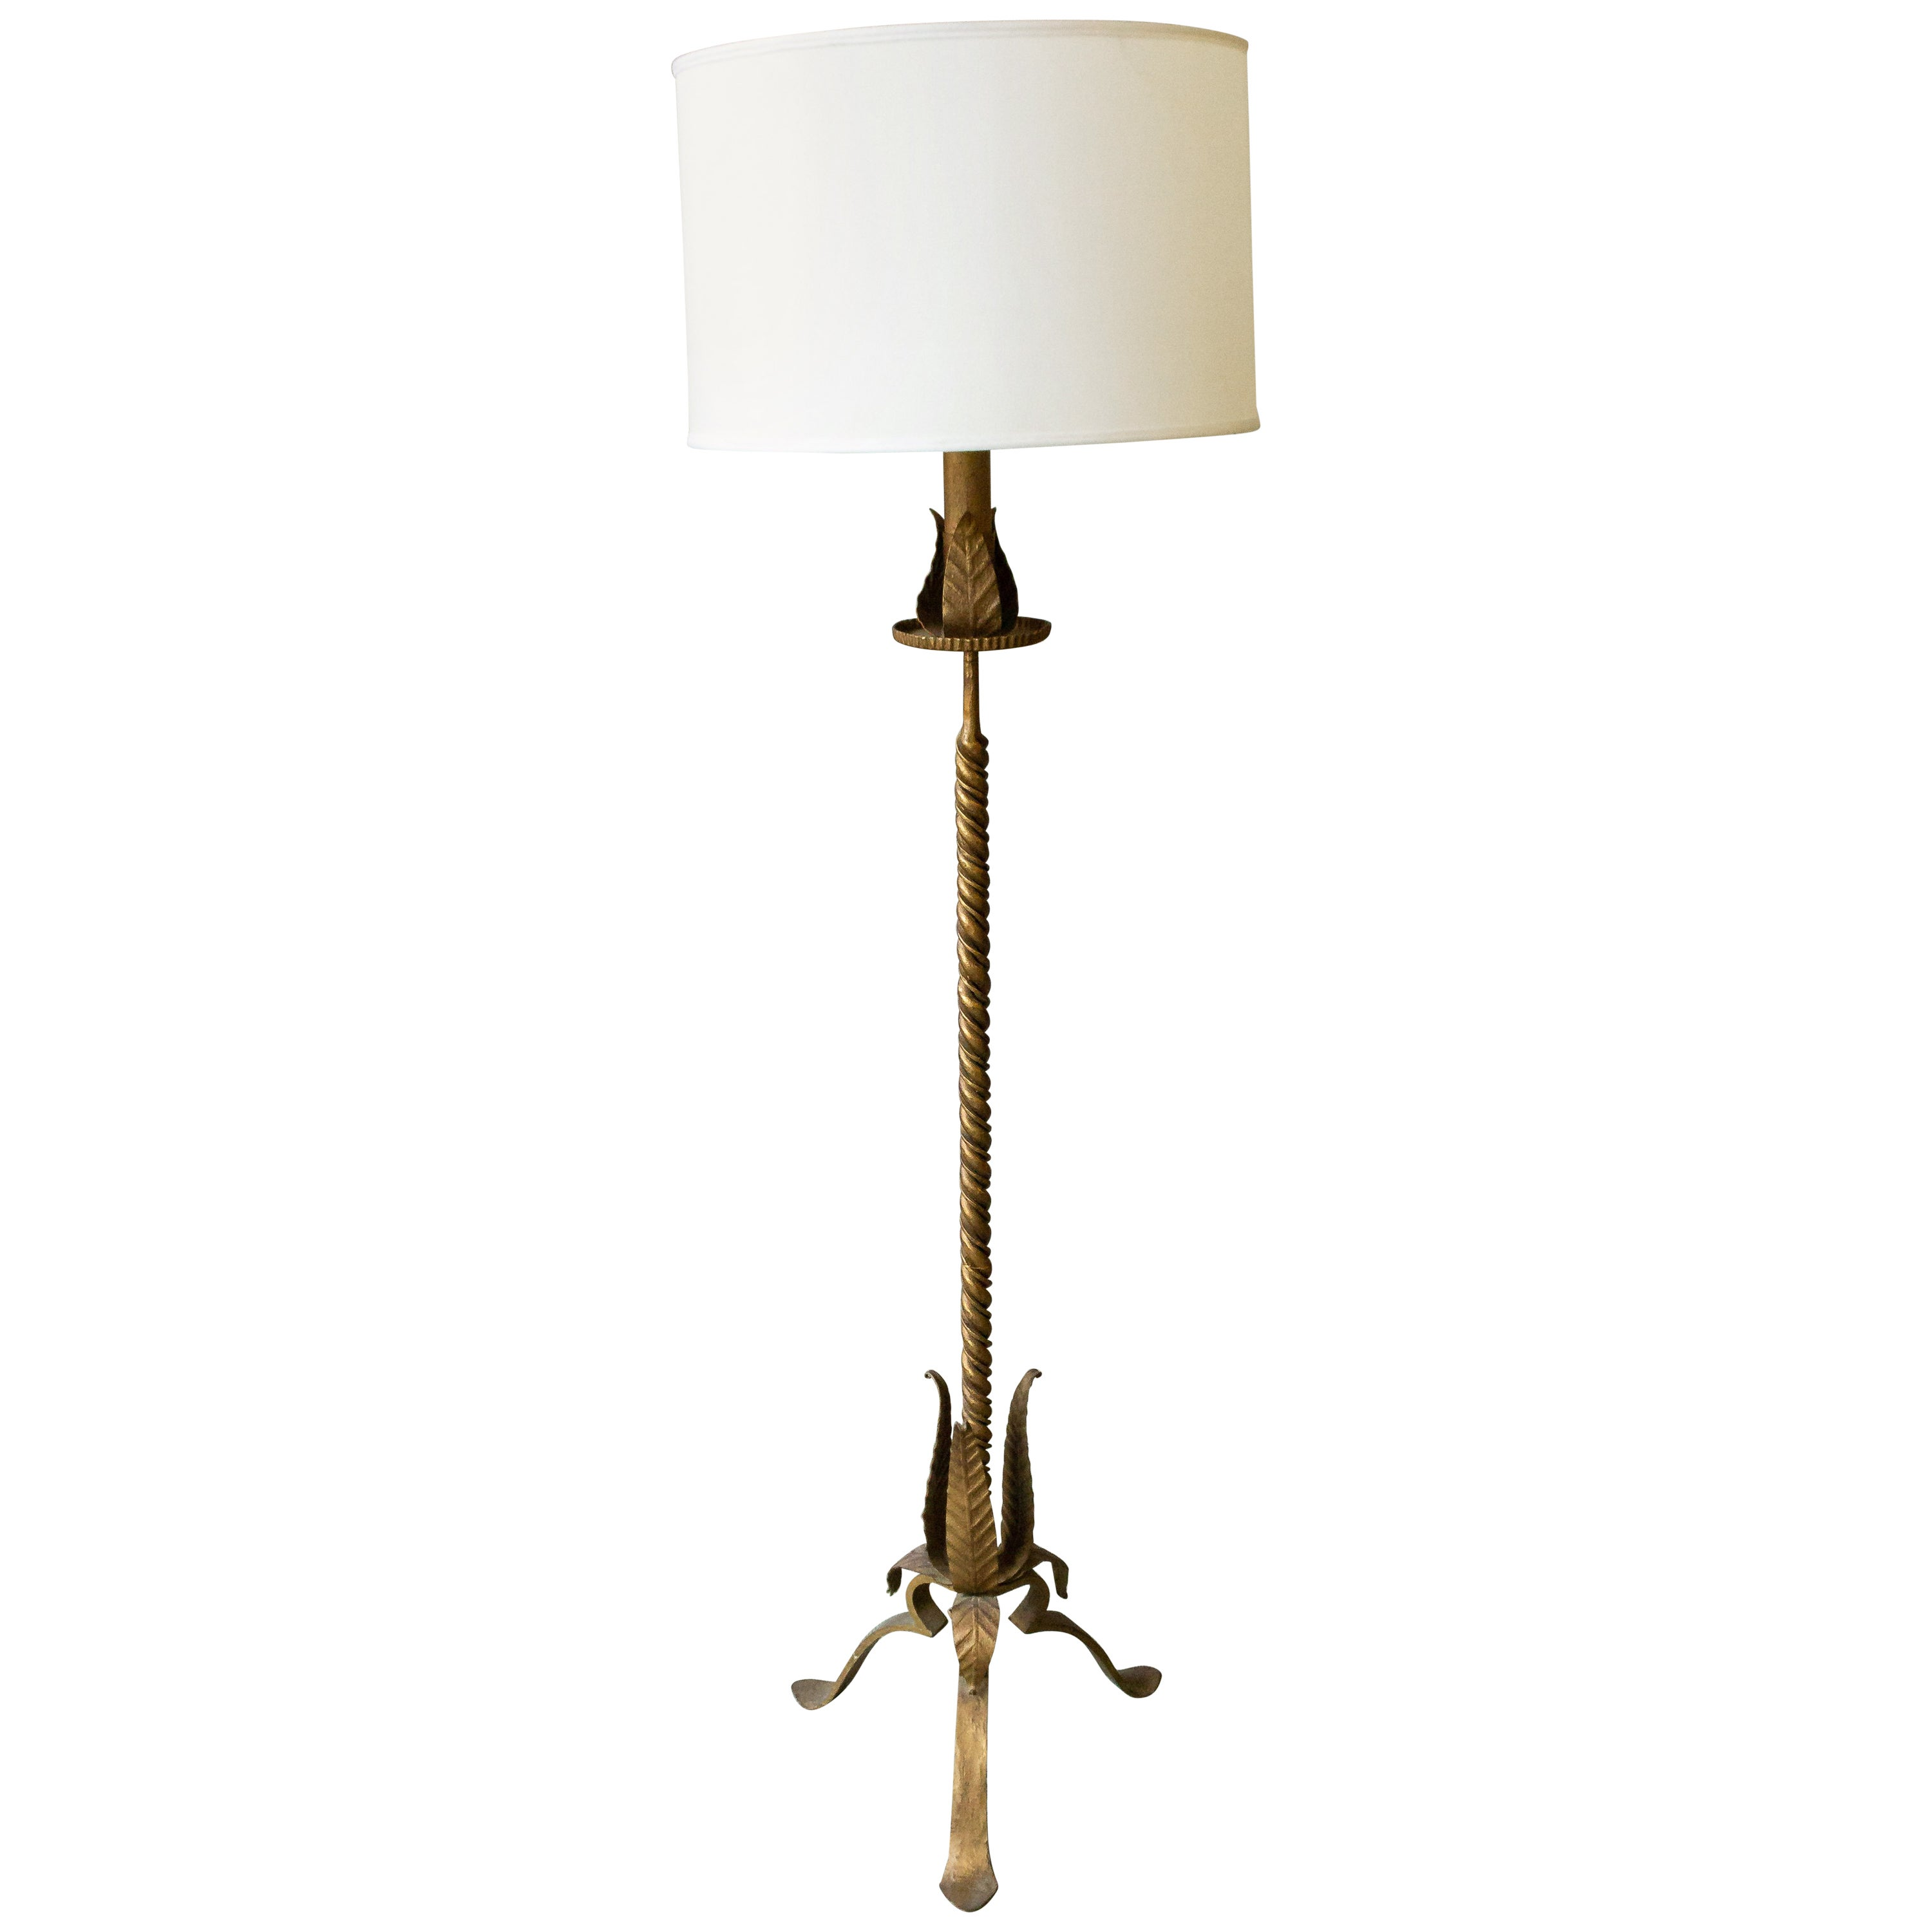 Large Gilt Iron Floor Lamp with Bold Leaf Detail